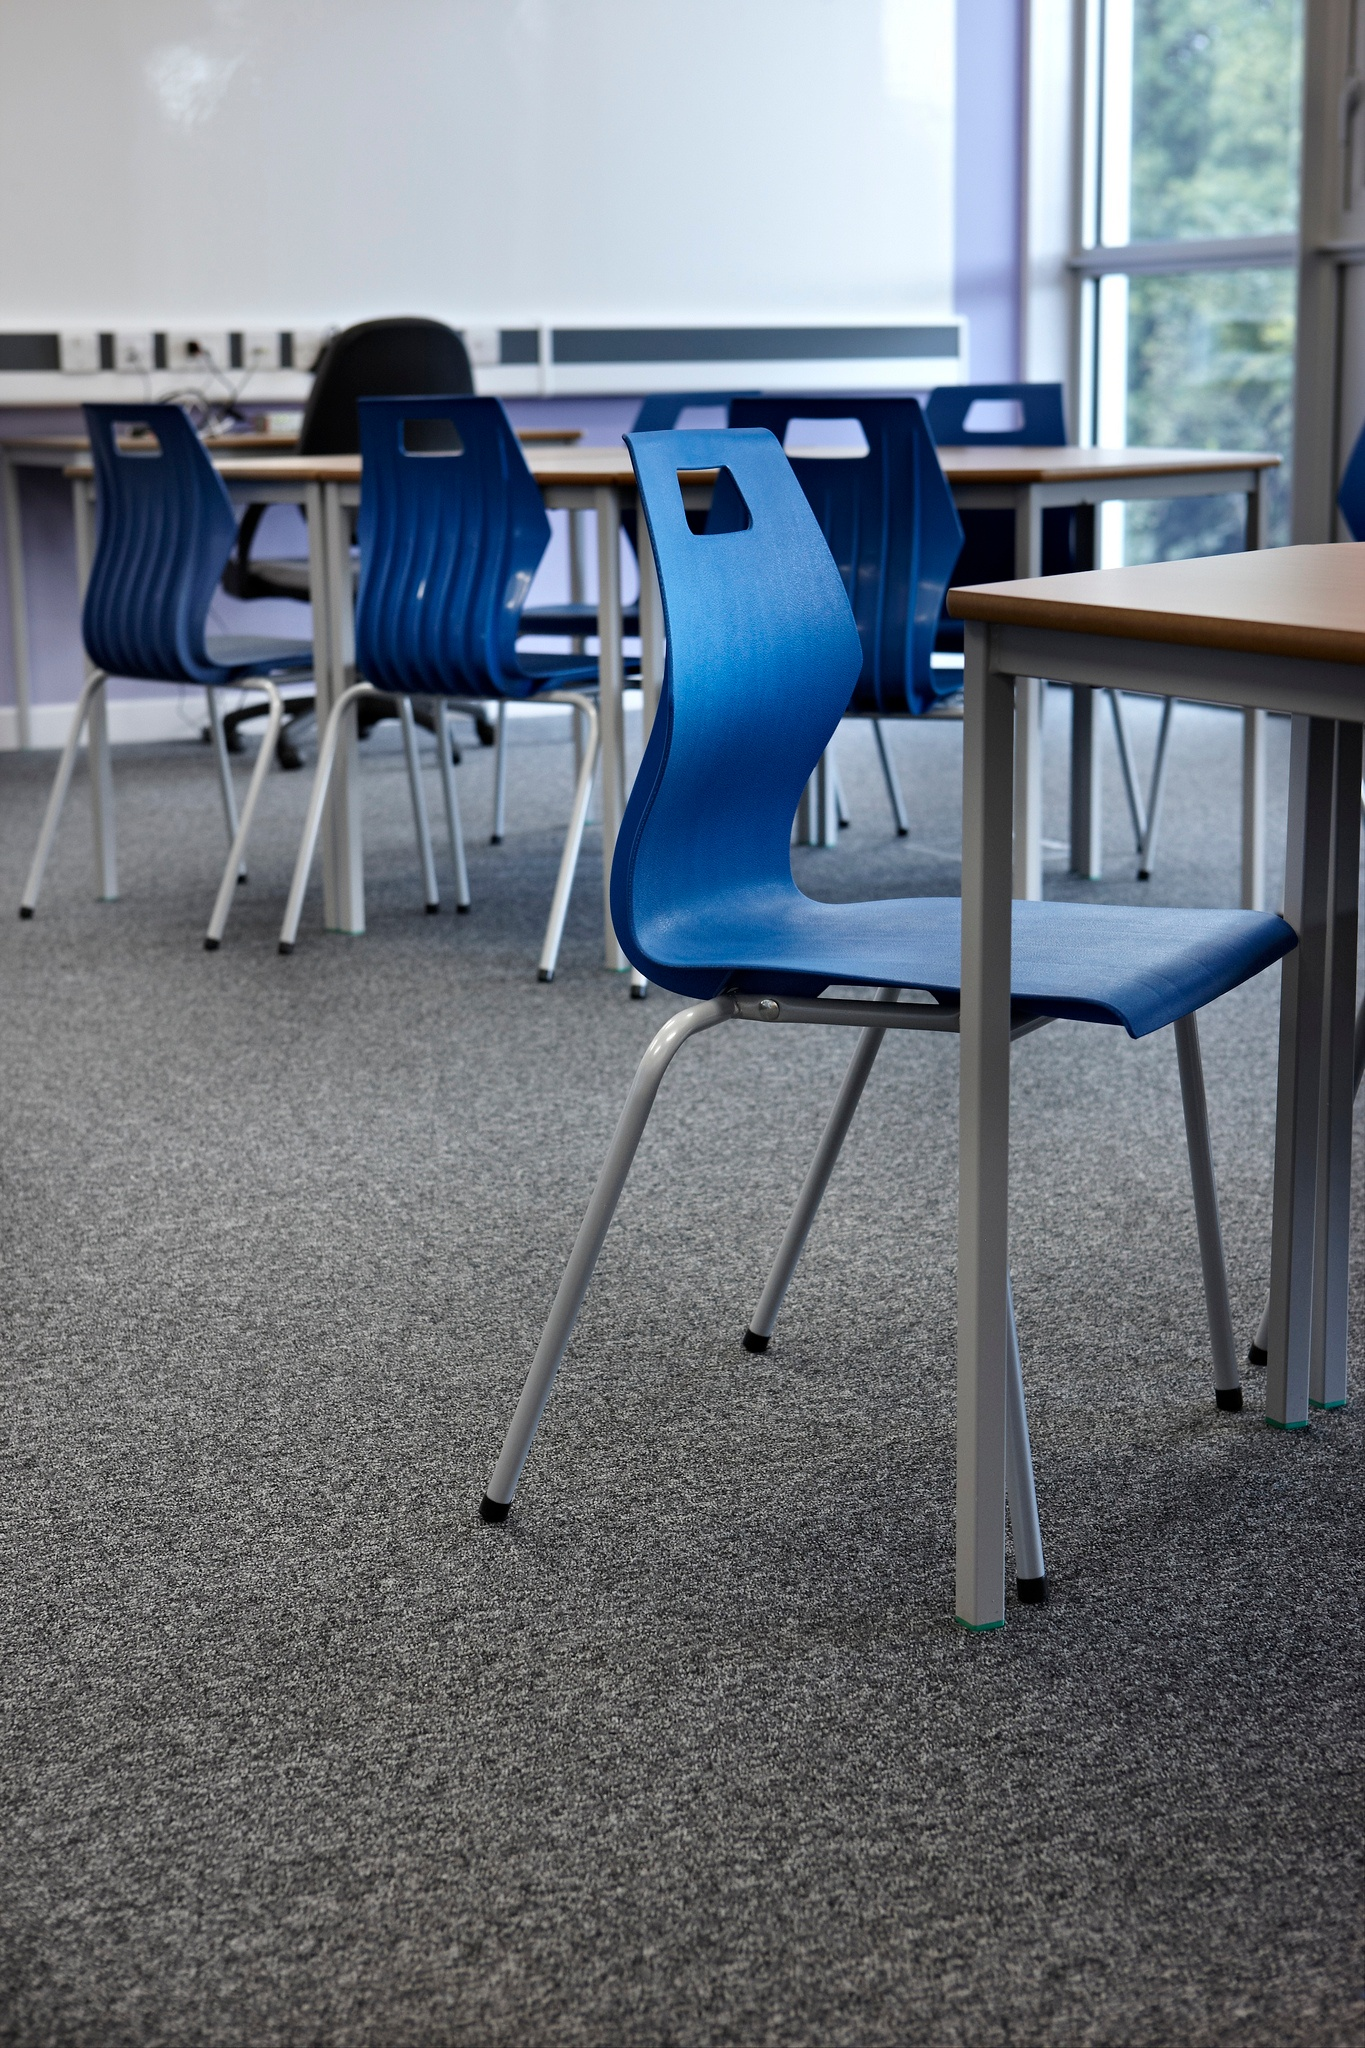 chair in classroom school education.jpg